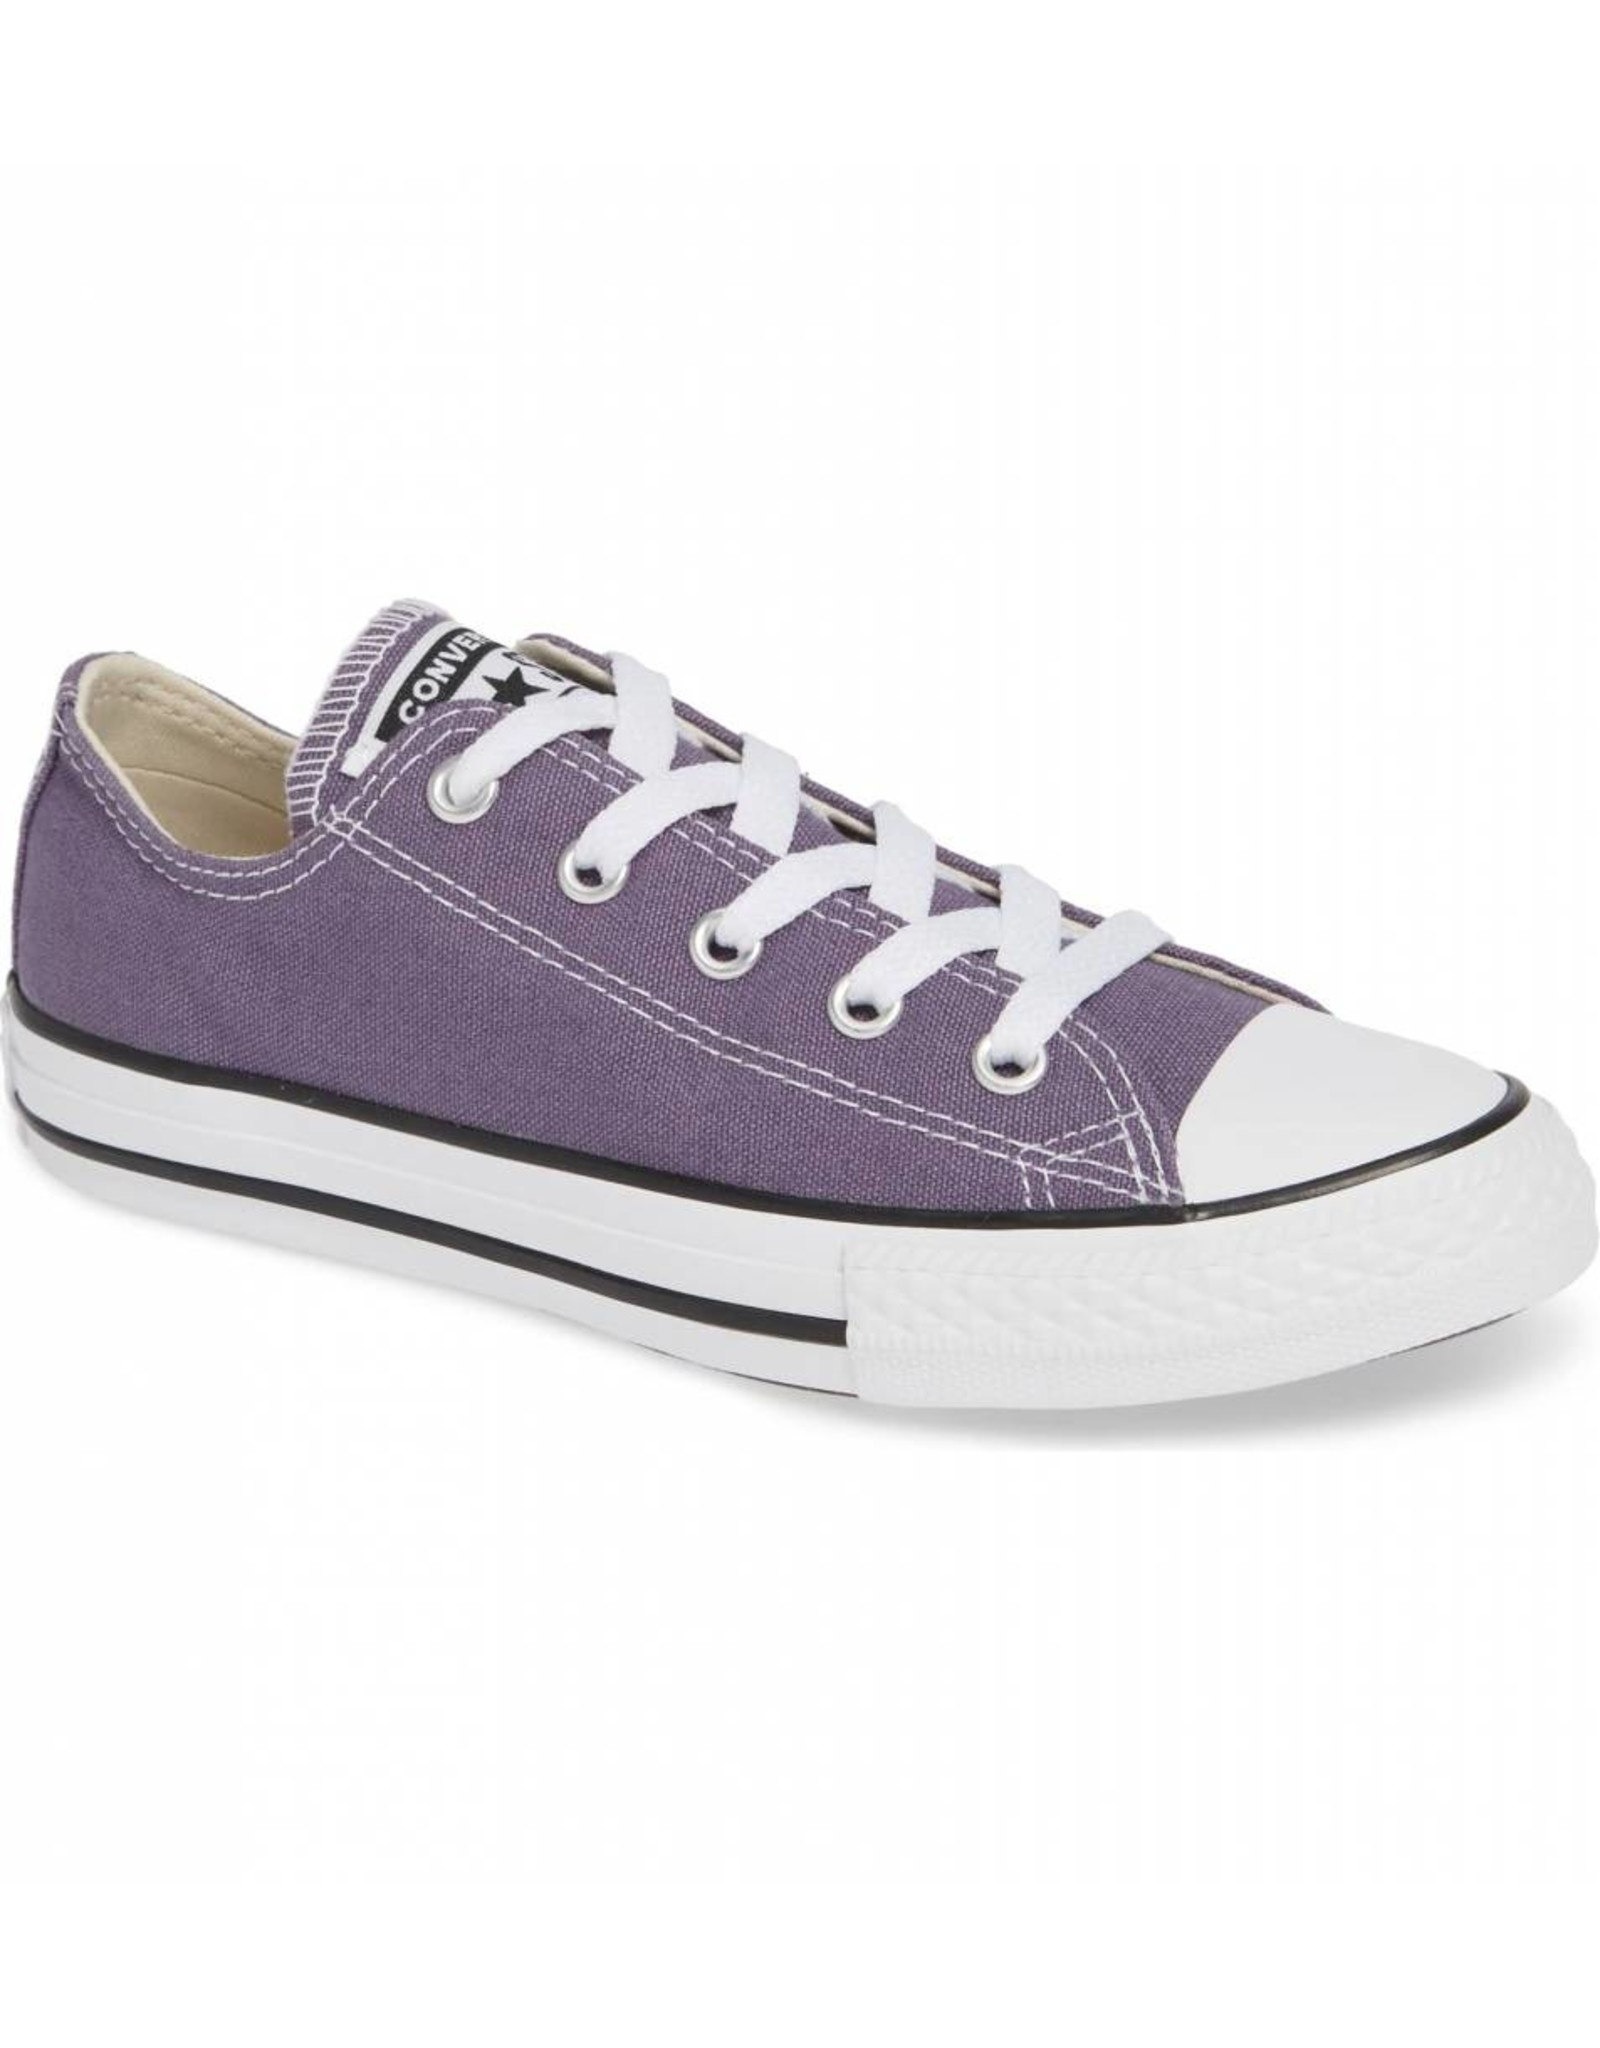 CONVERSE CTAS OX MOODY PURPLE/NATURAL IVORY/WHITE CZMPJ-663632C